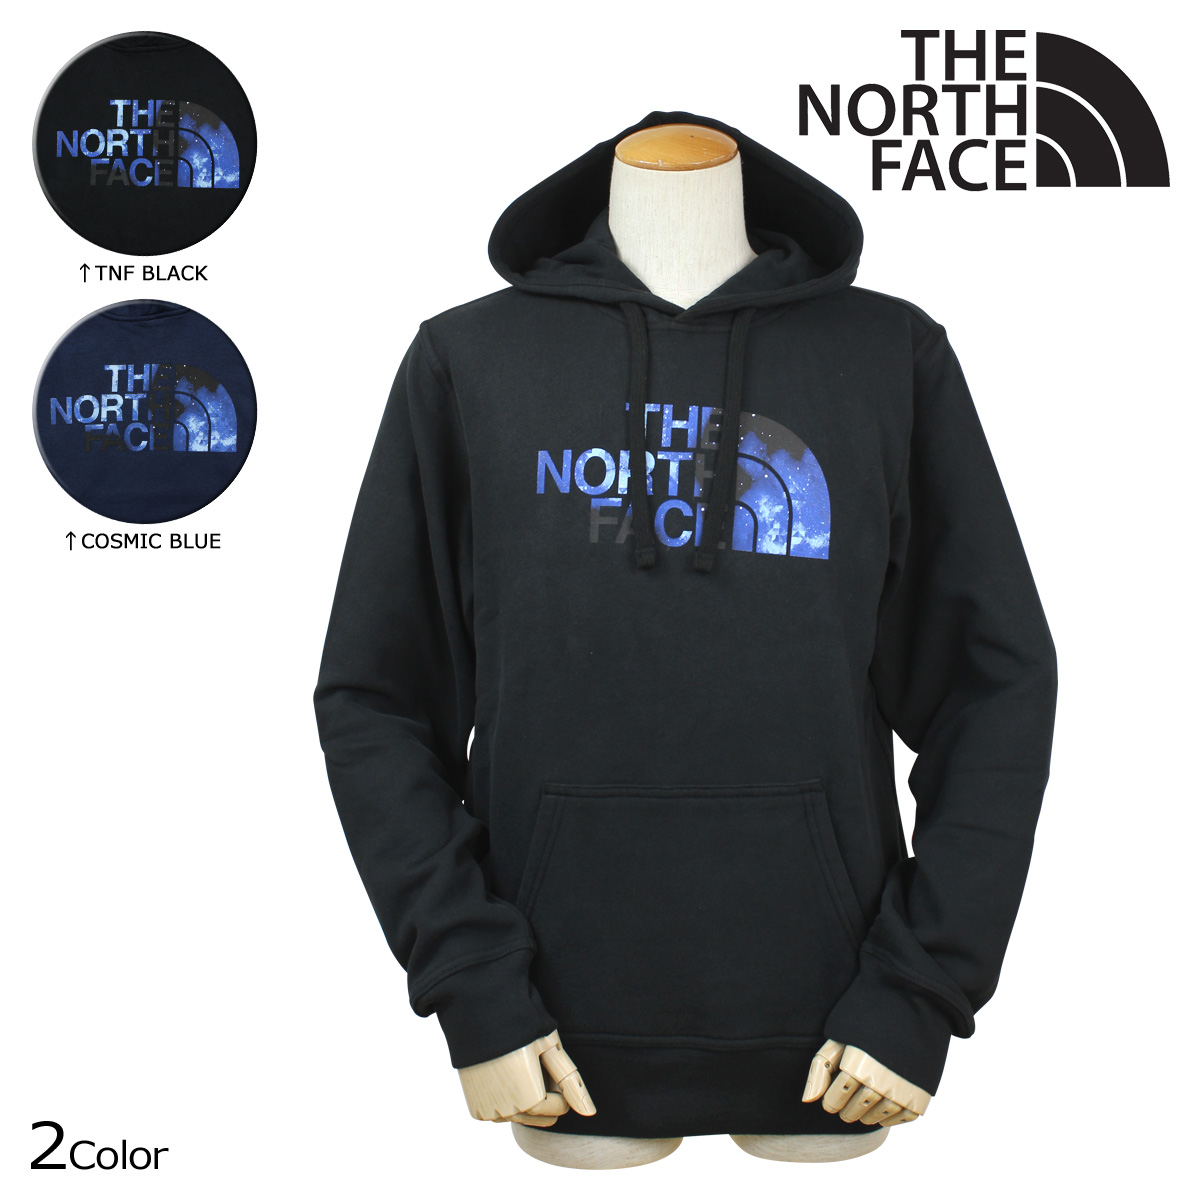 aba8dfde3e09  SOLD OUT  North Face THE NORTH FACE parka sweat shirt parka CZU8 2 color  MEN S INTANGIBLE LOGO PULLOVER HOODIE men